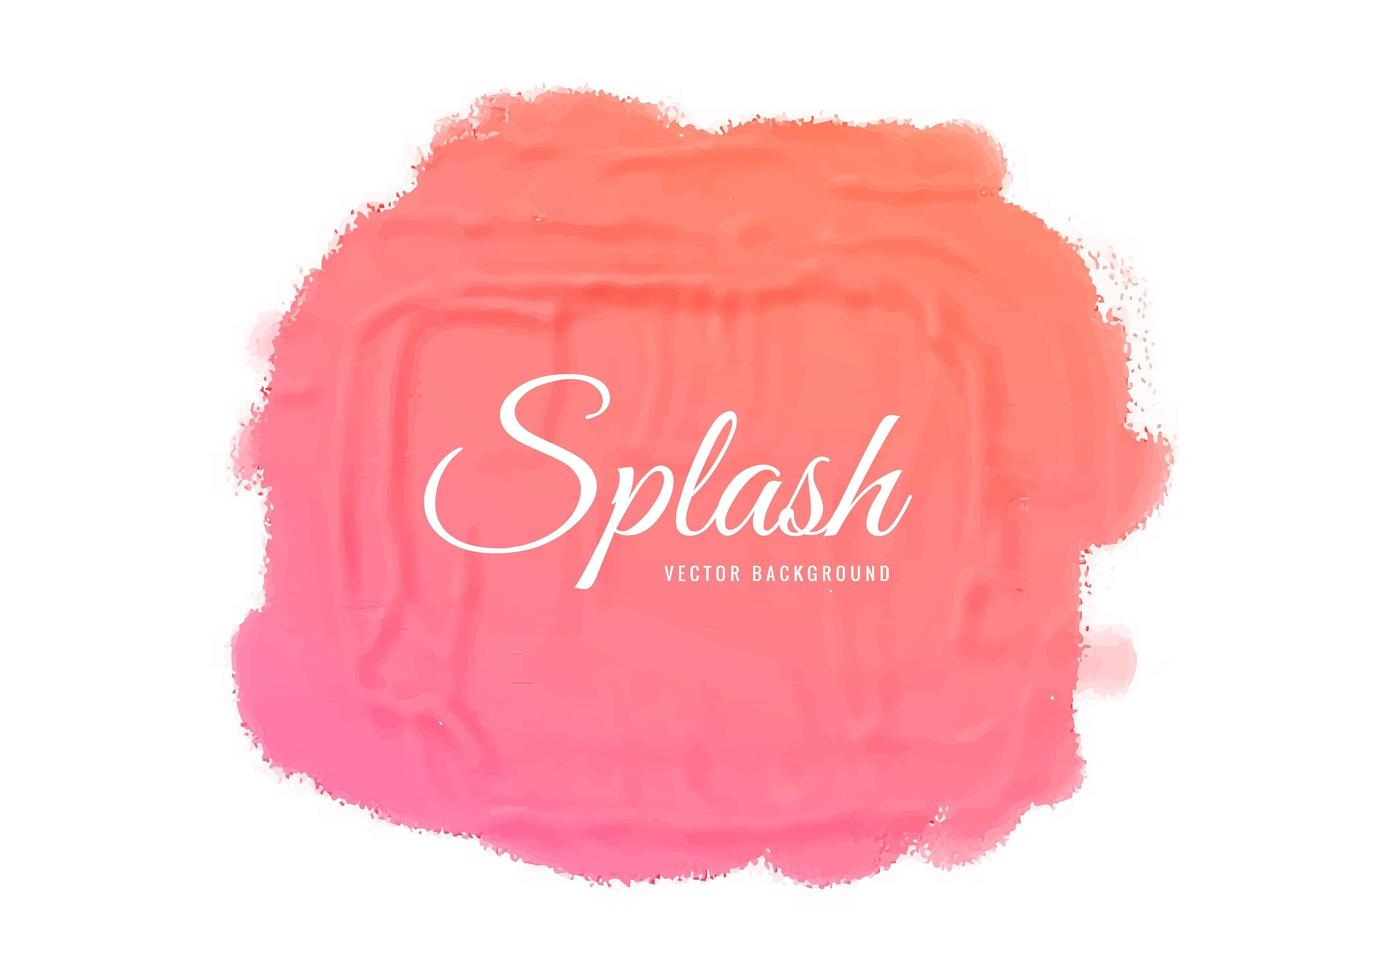 Abstract Pink Paint Texture Design vector